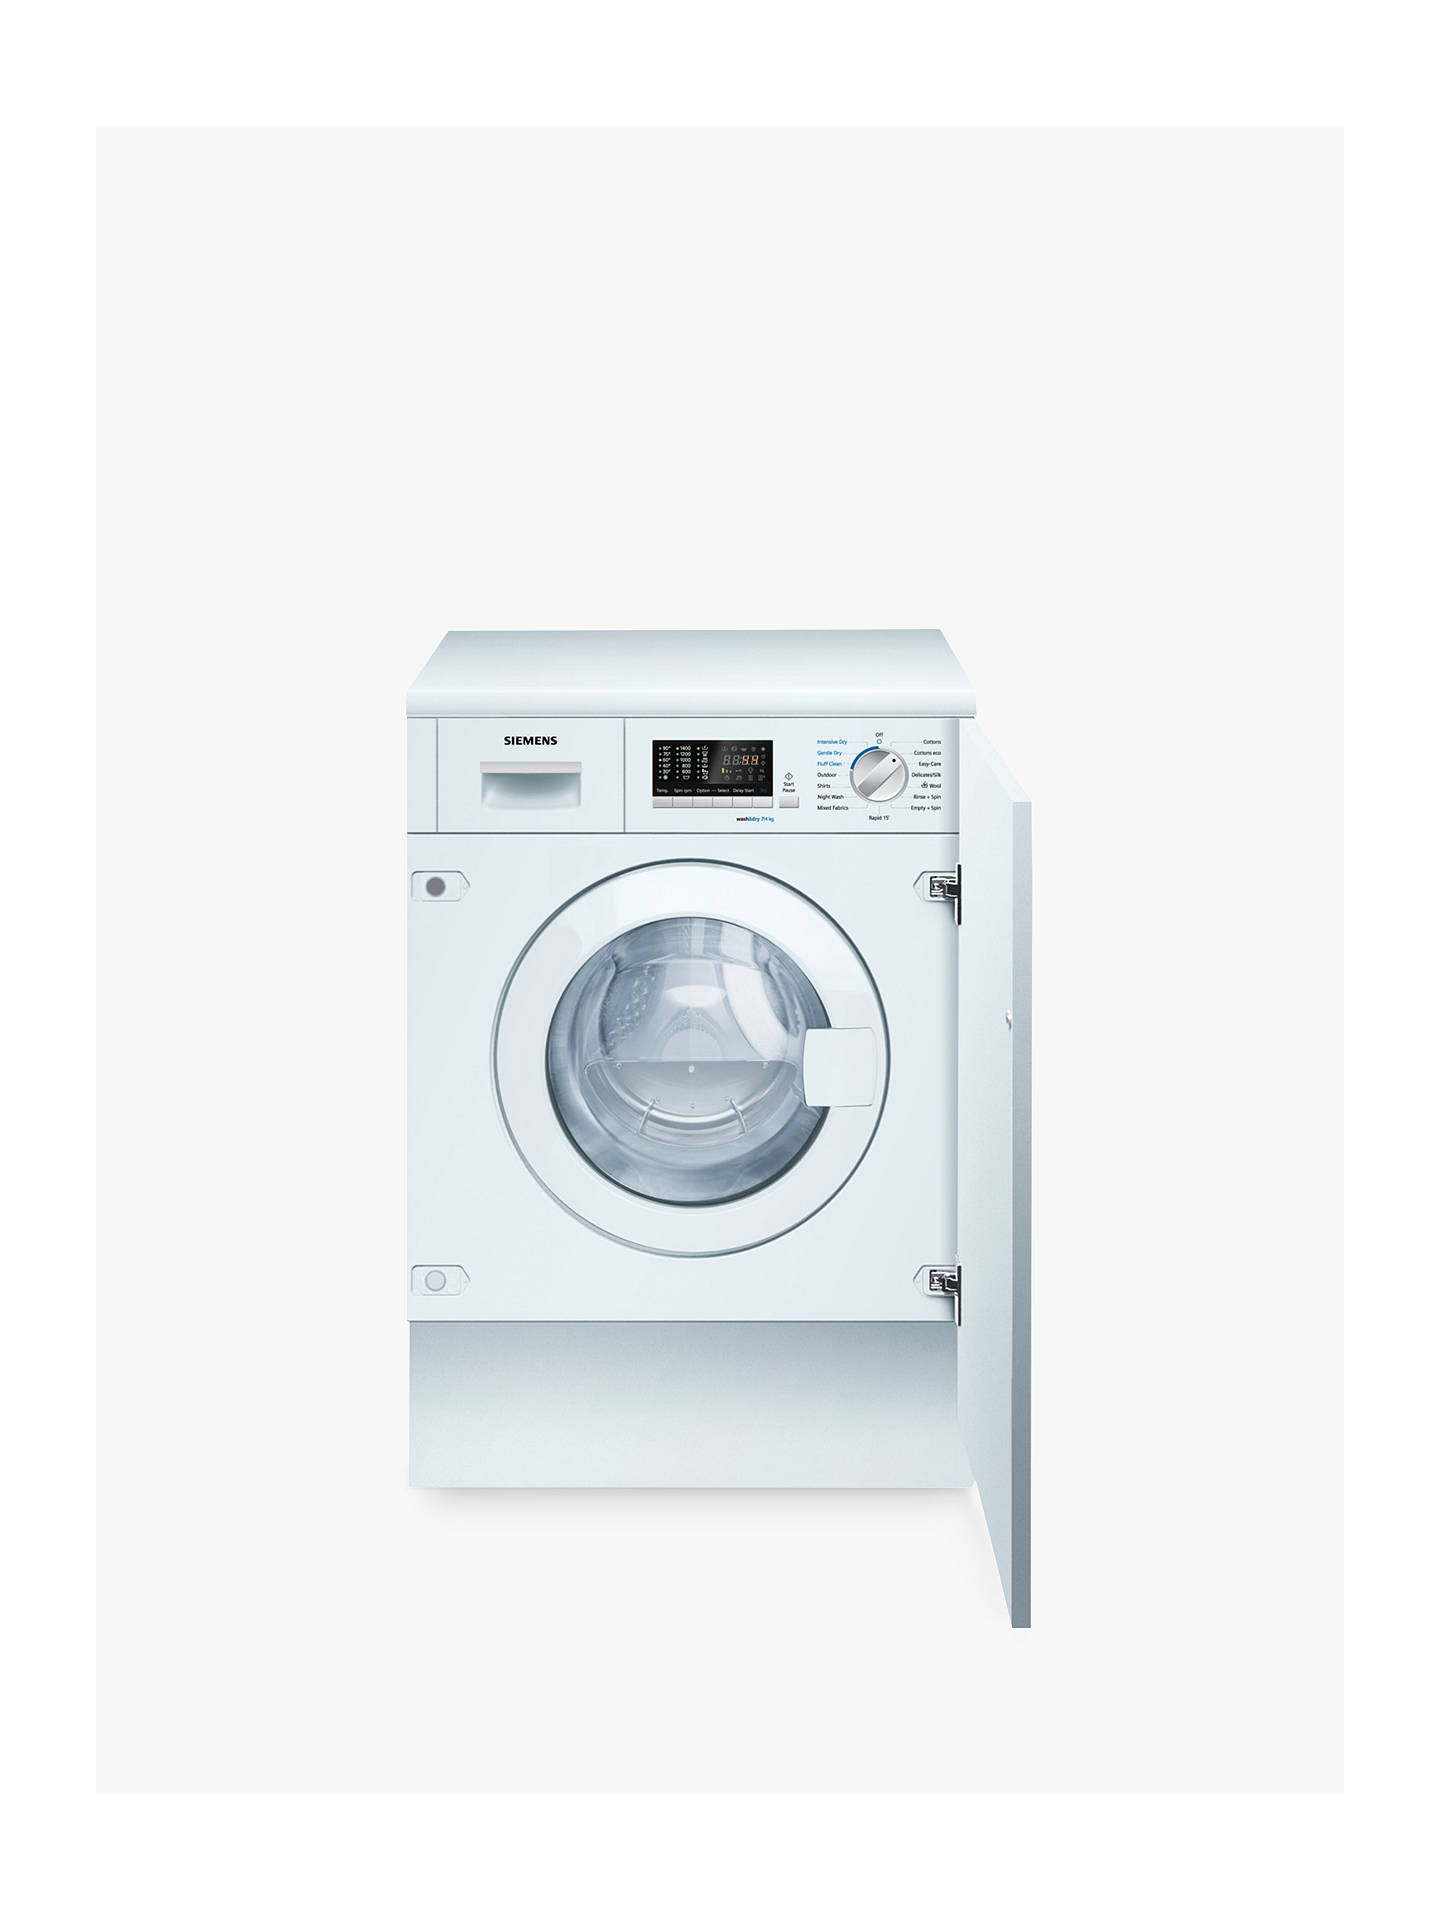 BuySiemens iQ500 WK14D541GB Integrated Washer Dryer, 7kg Wash/4kg Dry Load, B Energy Rating, 1400rpm Spin Online at johnlewis.com